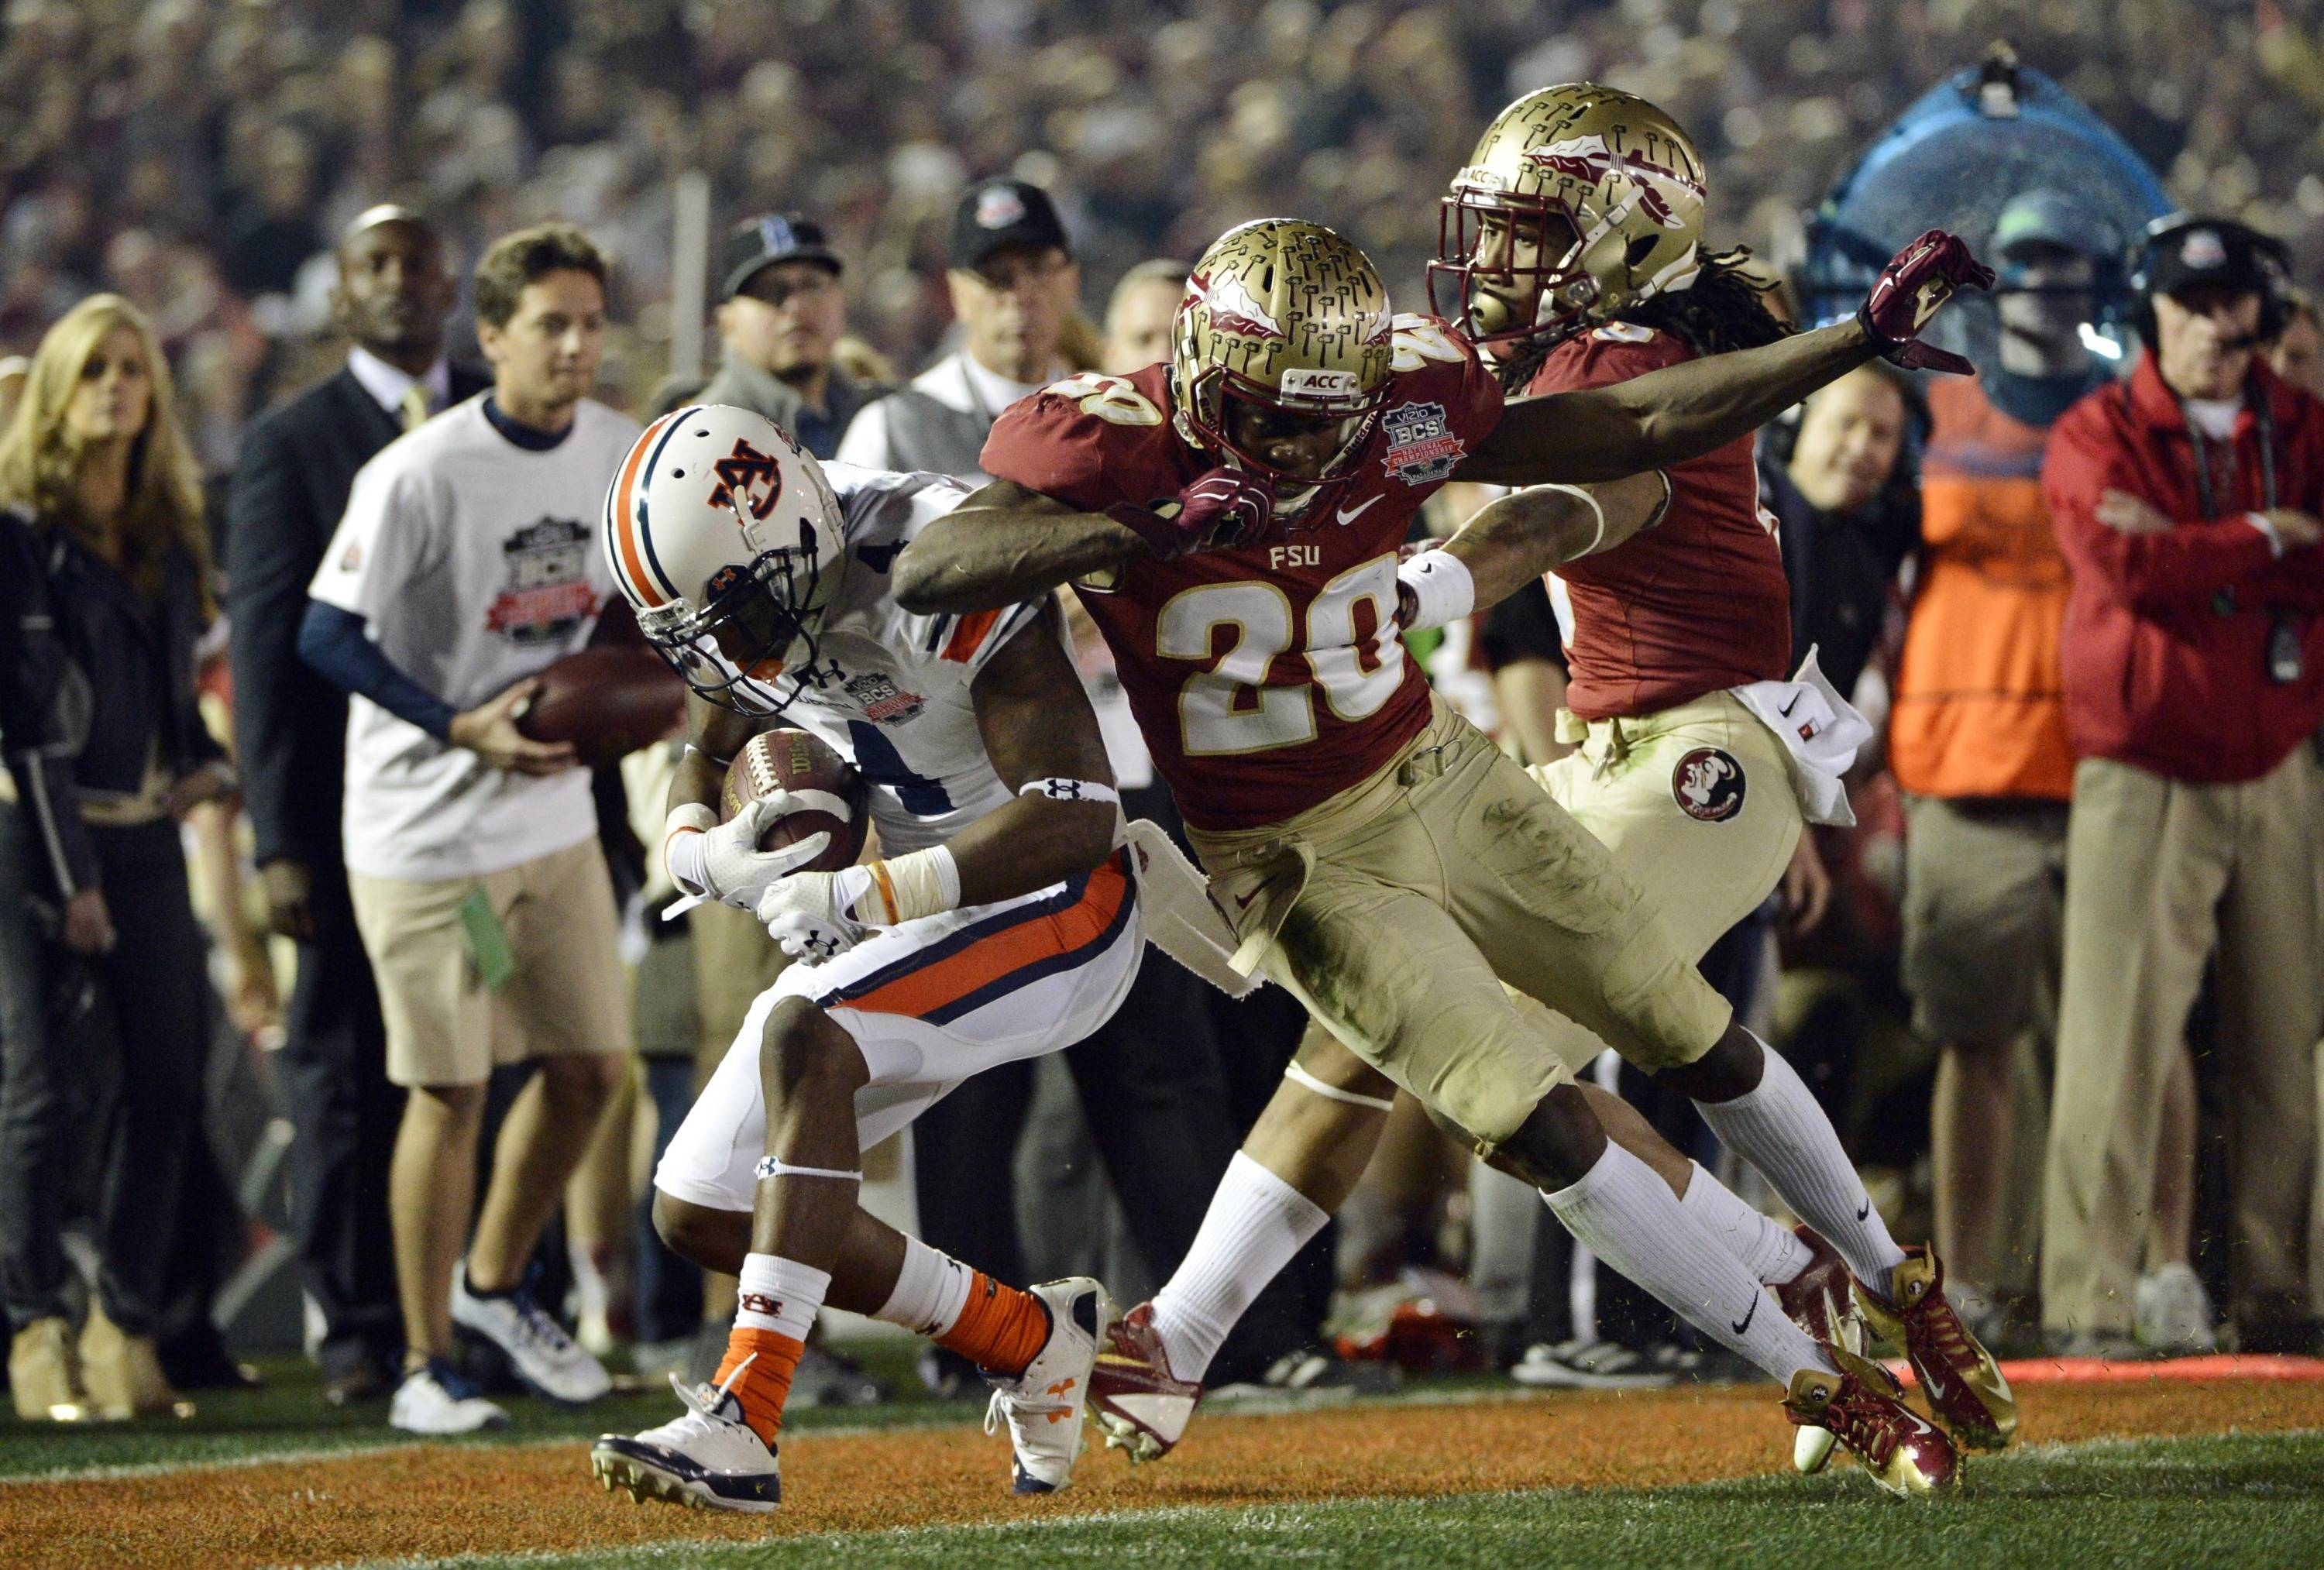 Jan 6, 2014; Pasadena, CA, USA; Auburn Tigers wide receiver Quan Bray (4) is tackled by Florida State Seminoles defensive back Lamarcus Joyner (20) during the first half of the 2014 BCS National Championship game at the Rose Bowl.  Mandatory Credit: Robert Hanashiro-USA TODAY Sports